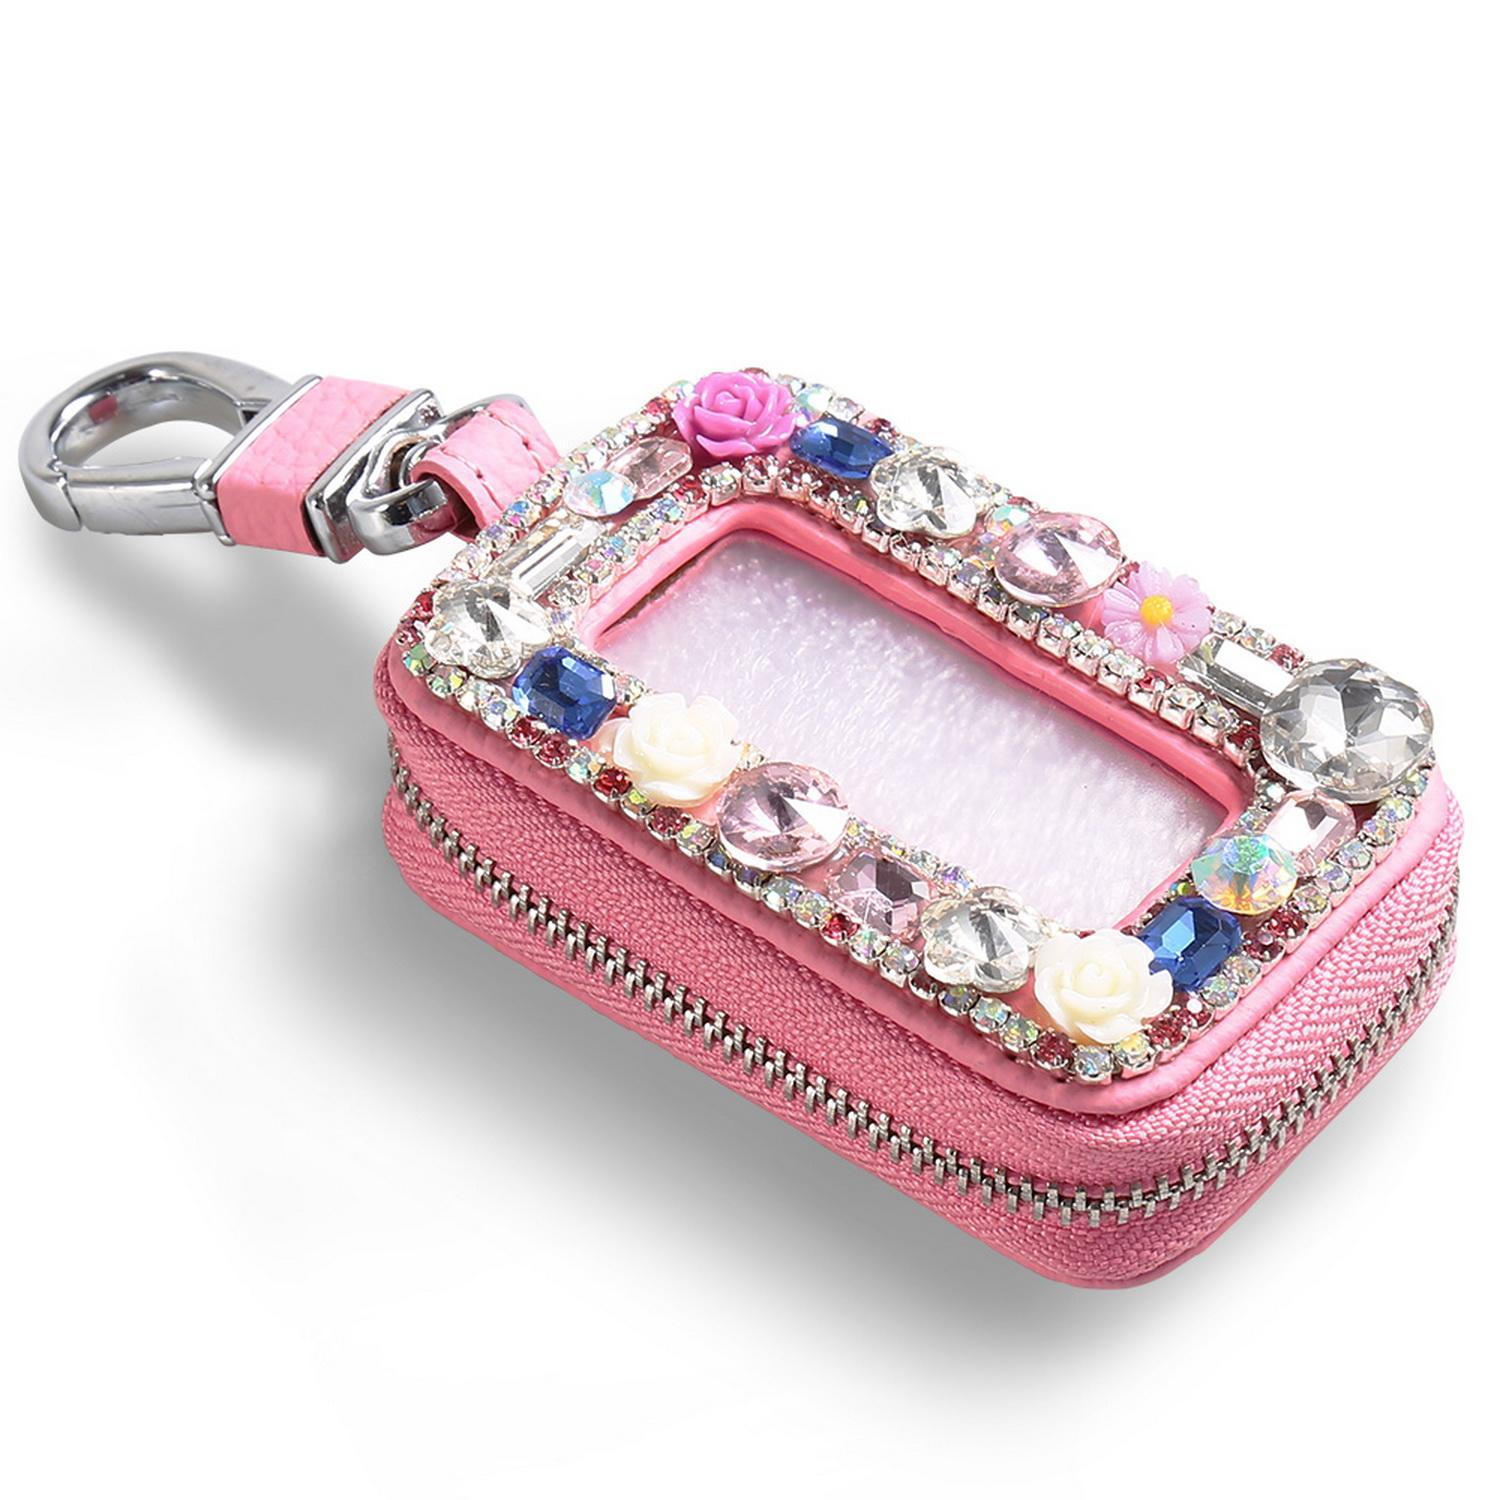 Car Key Holder Black Car Key Case Chain key Cover Coin Holder Keyring Wallet Zipper Rhinestone Bag DEAML